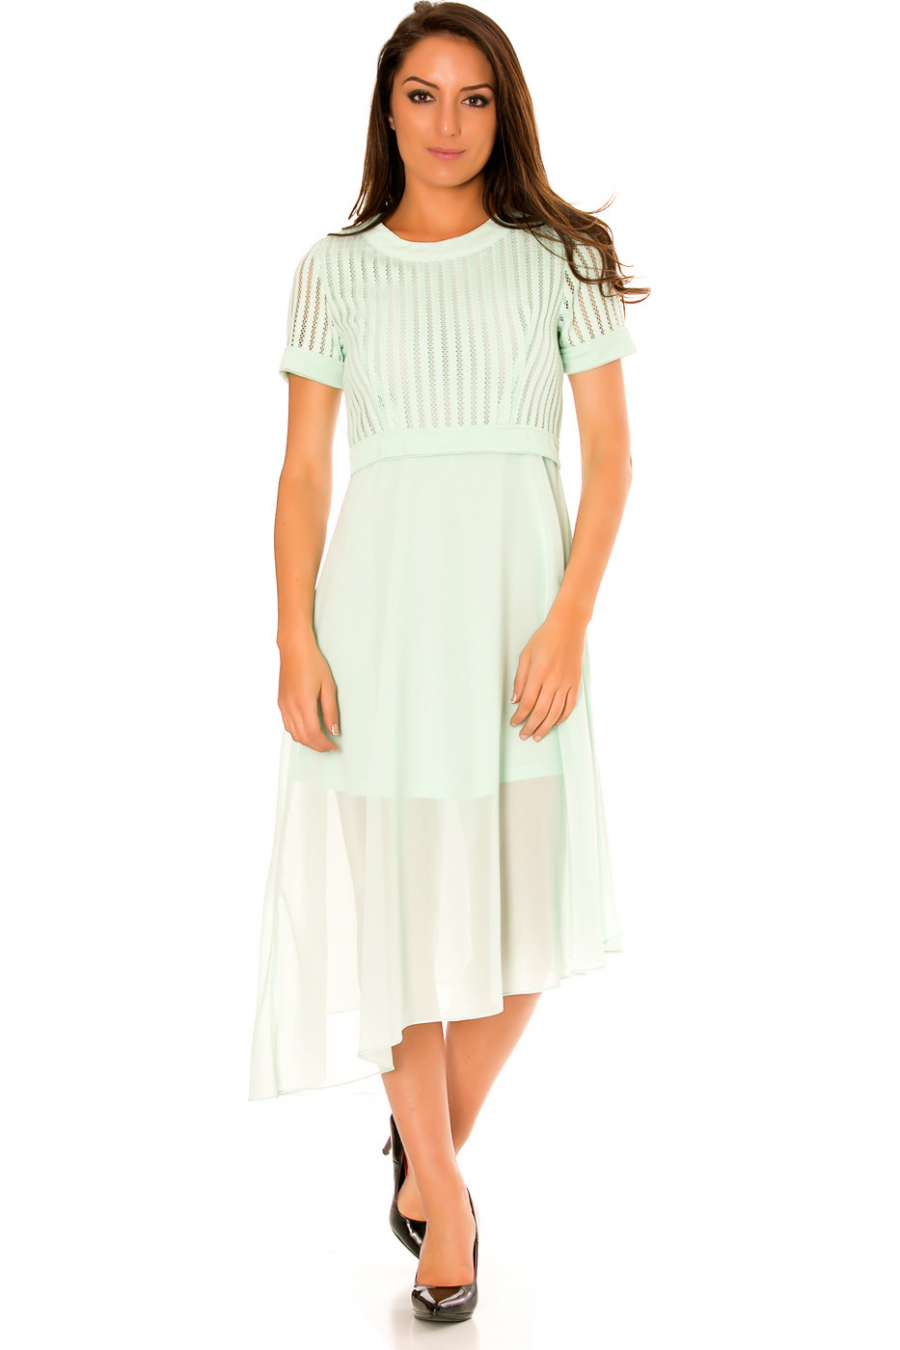 Asymmetric, bi-material water green dress. Top with hole and sheer skirt. F6281